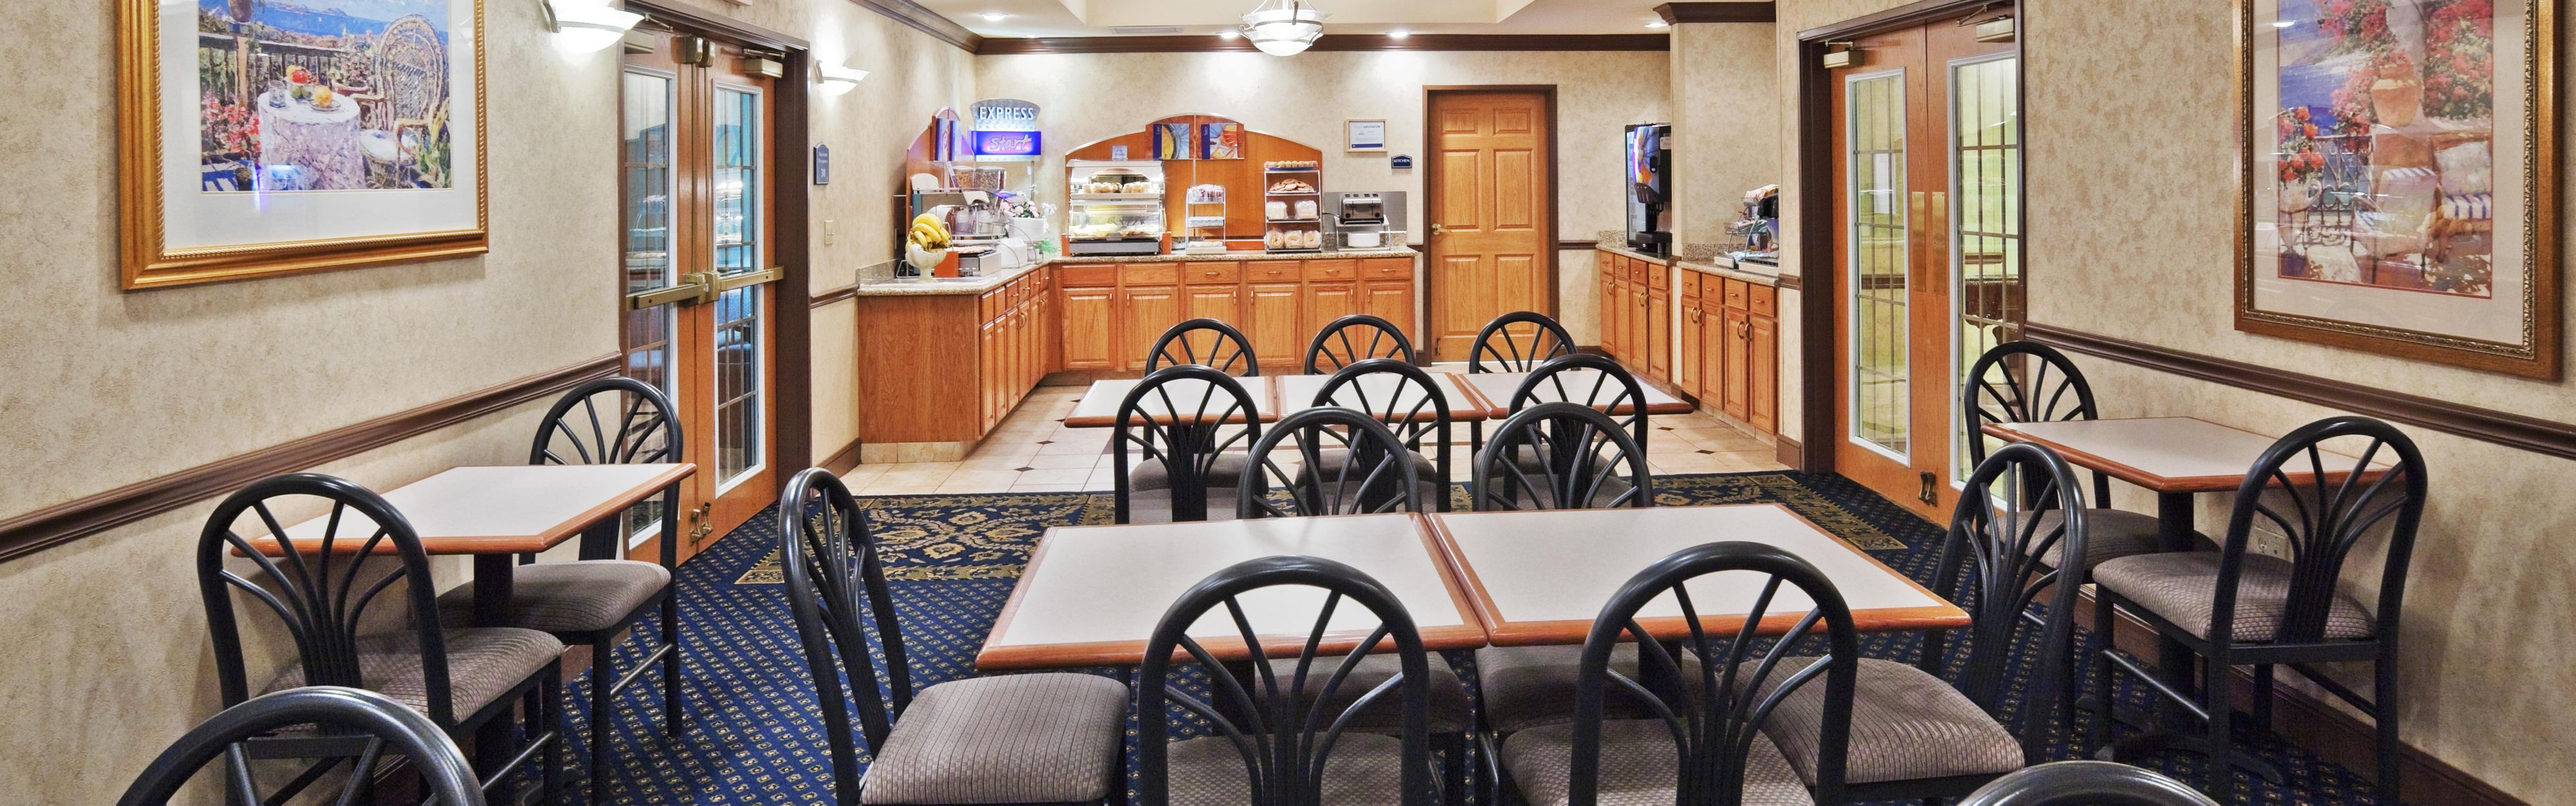 Holiday Inn Express & Suites Jenks image 2